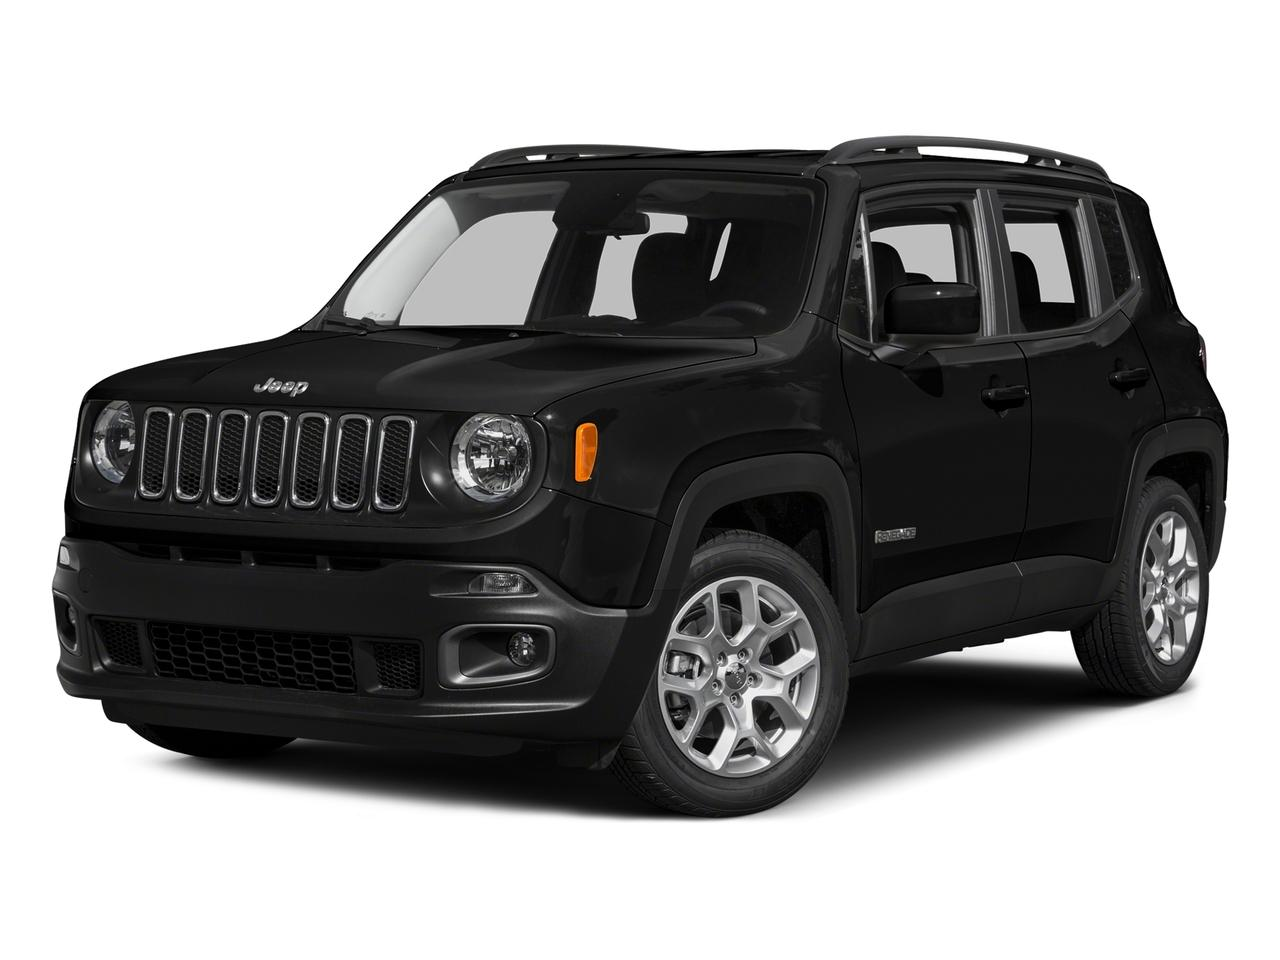 2015 Jeep Renegade Vehicle Photo in Washington, NJ 07882